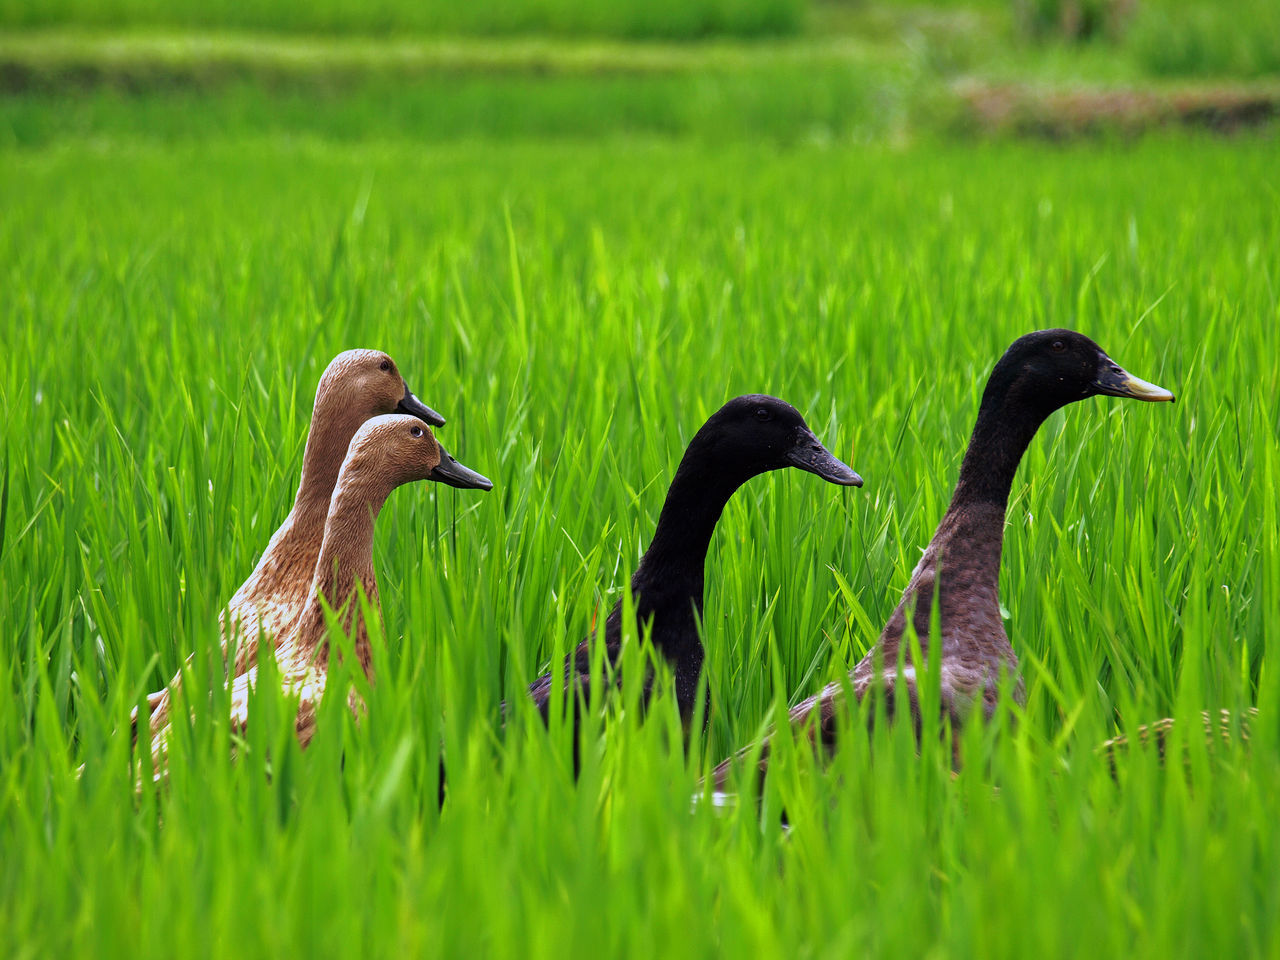 Bird Coureurs Indiens Curious Duck Ducks Field Four Ducks Grass Grassy Green Color Indian Runner Duck Indian Runnes Indian Running Ducks INDONESIA Indonesia_photography Natural Beauty Nature Nature Nature Photography Nature_collection Rice Rice Field Ricefield Serenity Wildlife Neon Life